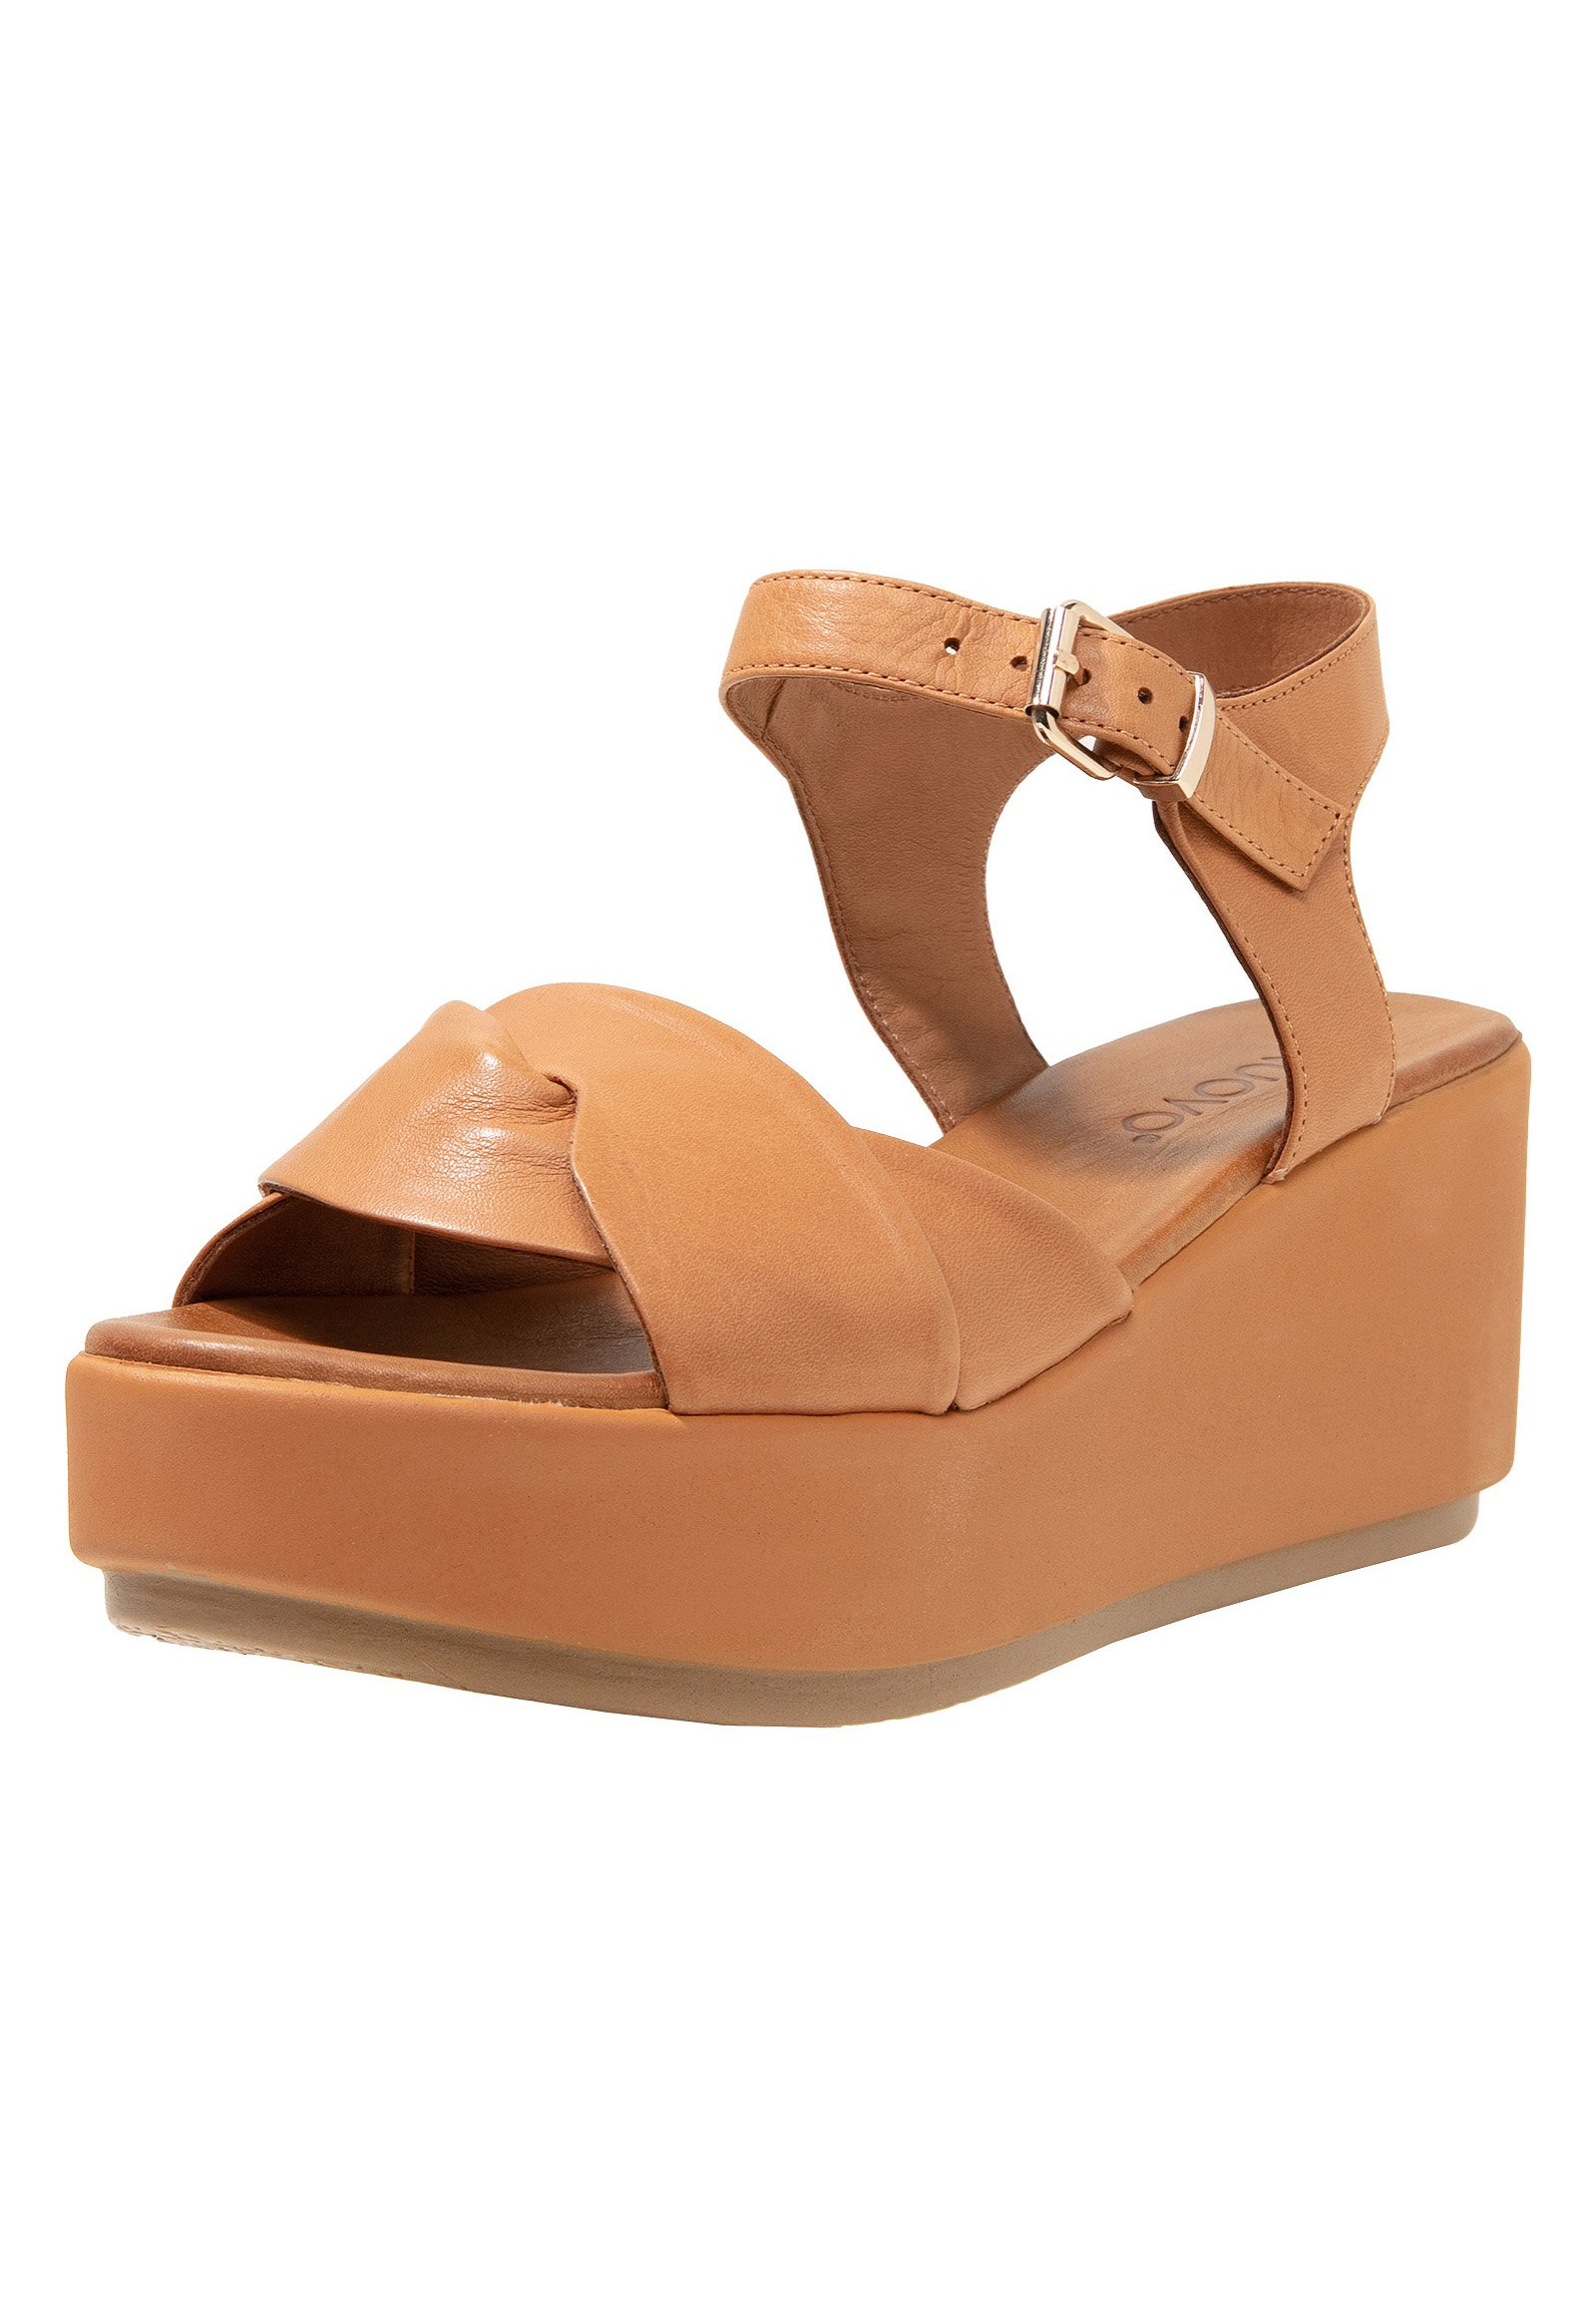 Inuovo Plateausandaler - Coconut Ccn